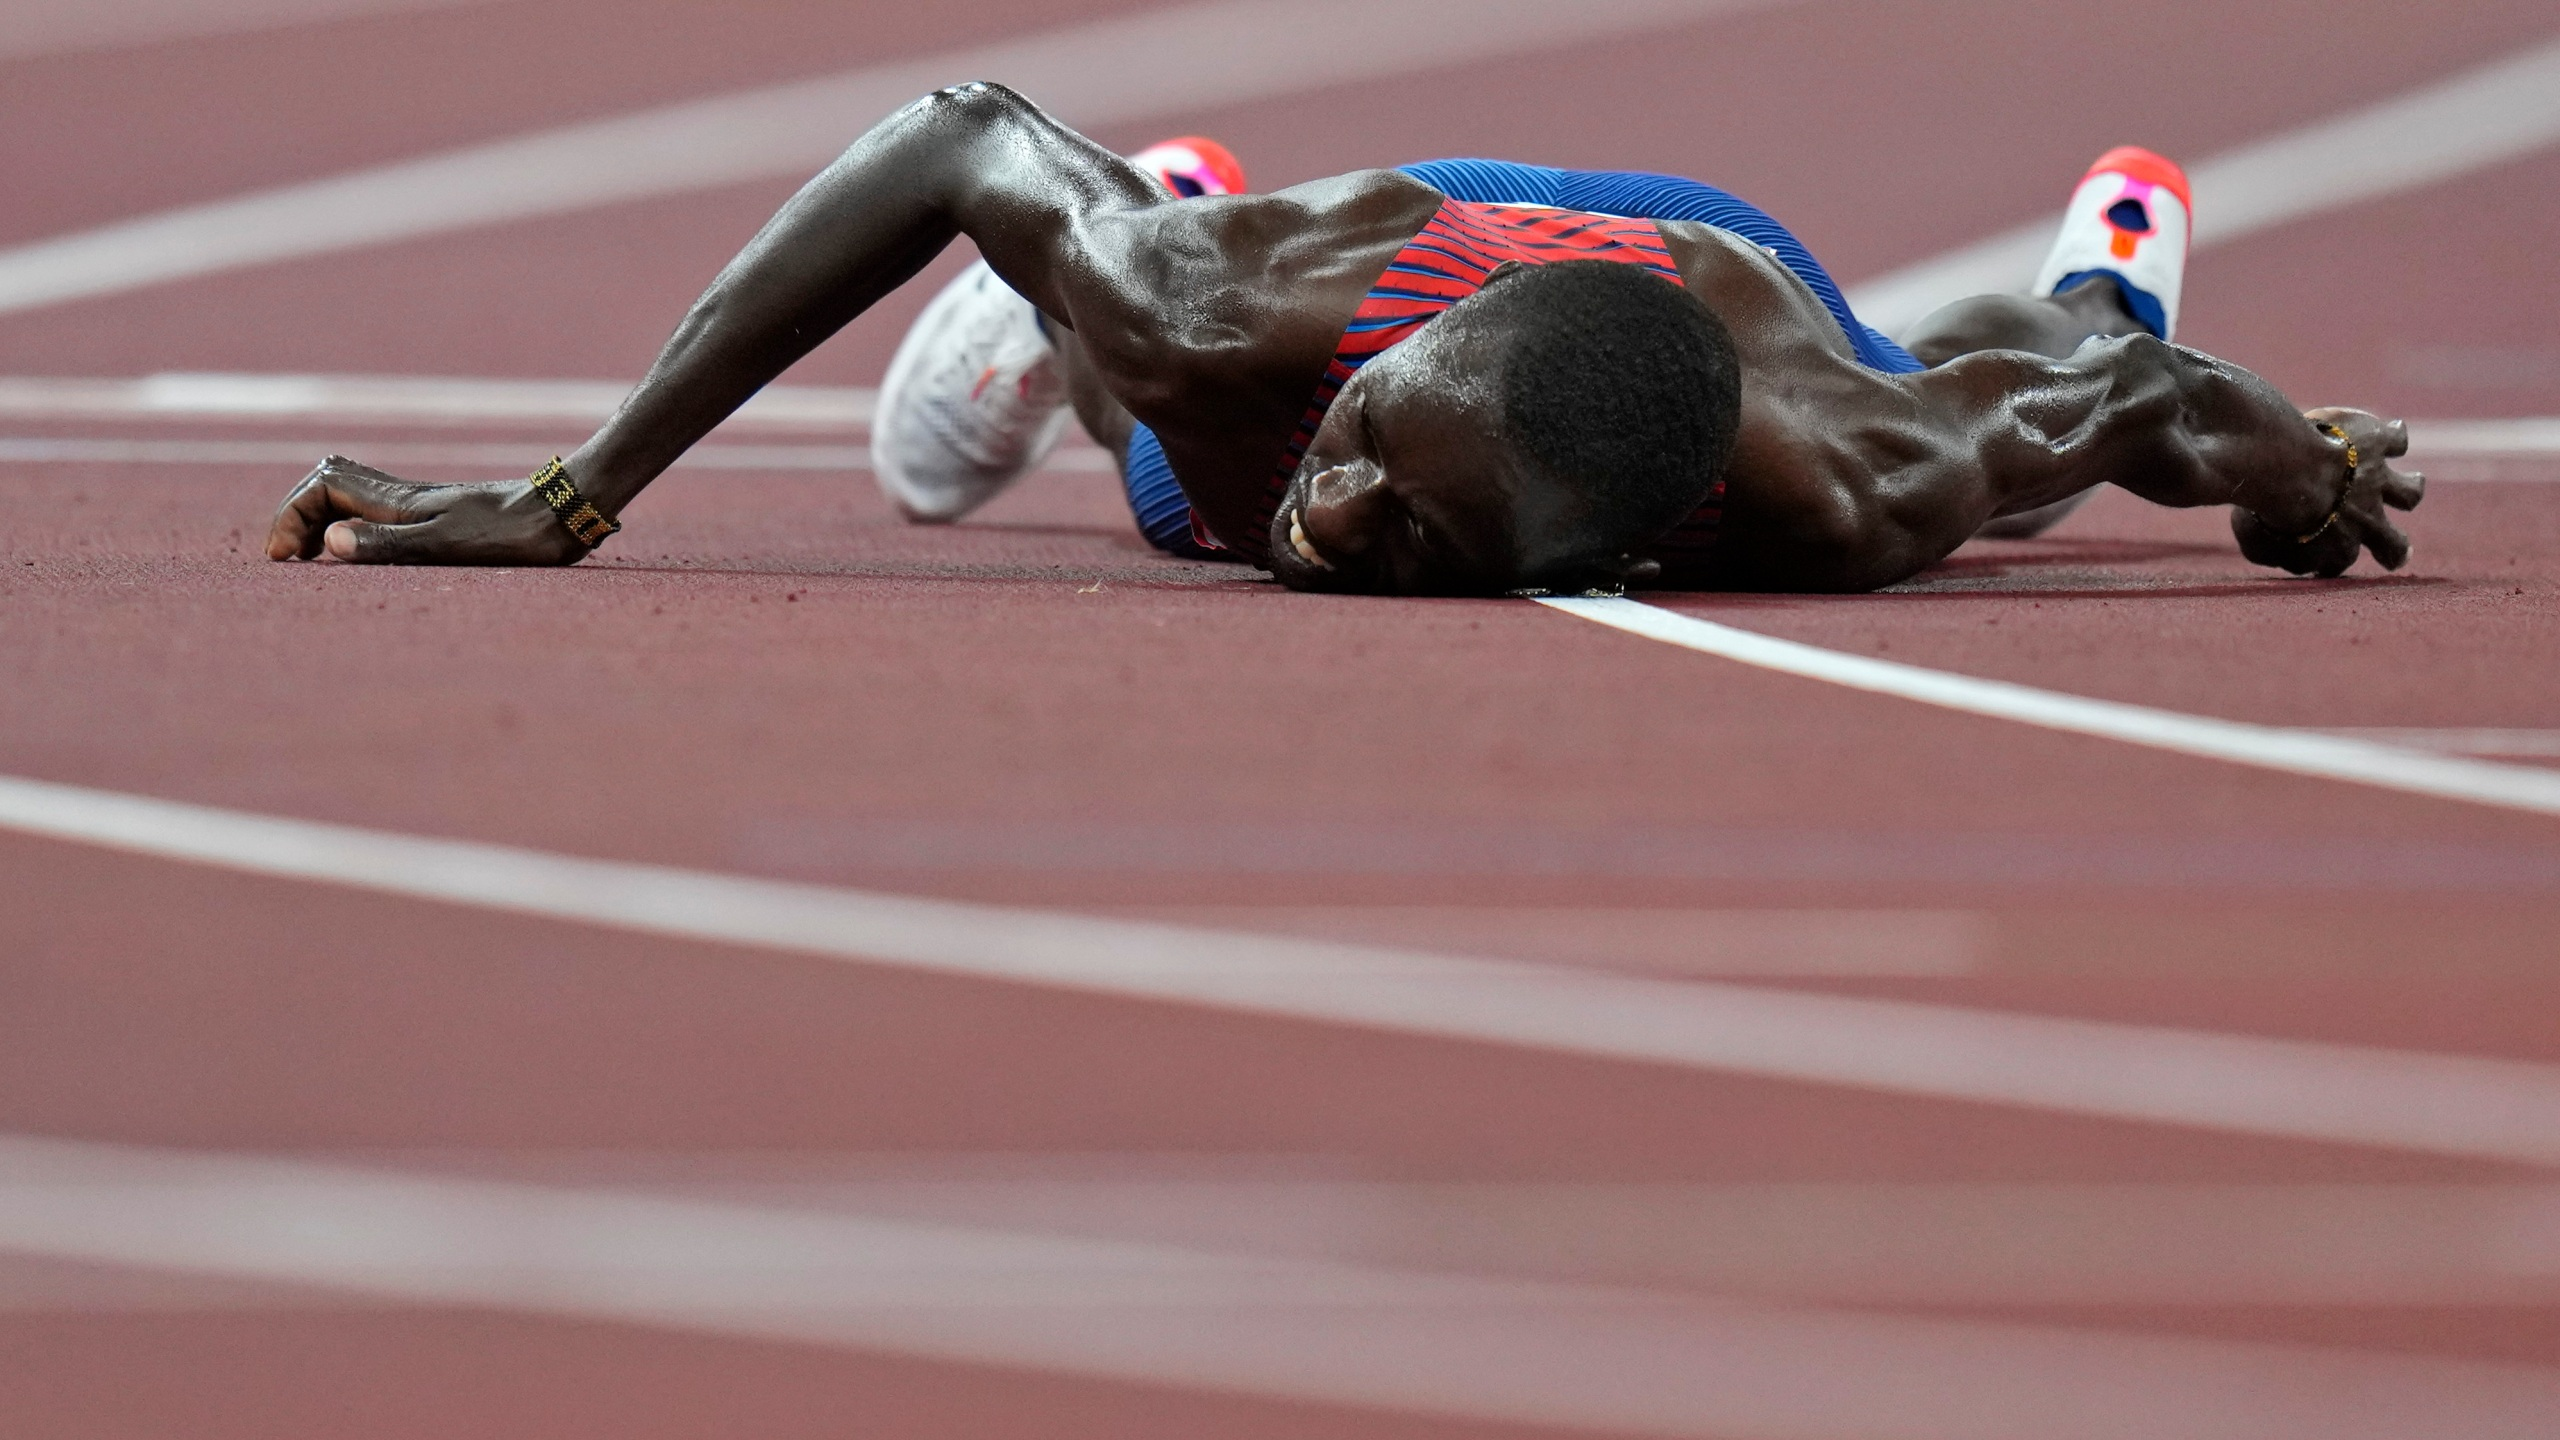 Paul Chelimo, of United States, lies on the track after the final of the men's 5,000-meters at the 2020 Summer Olympics in Tokyo.